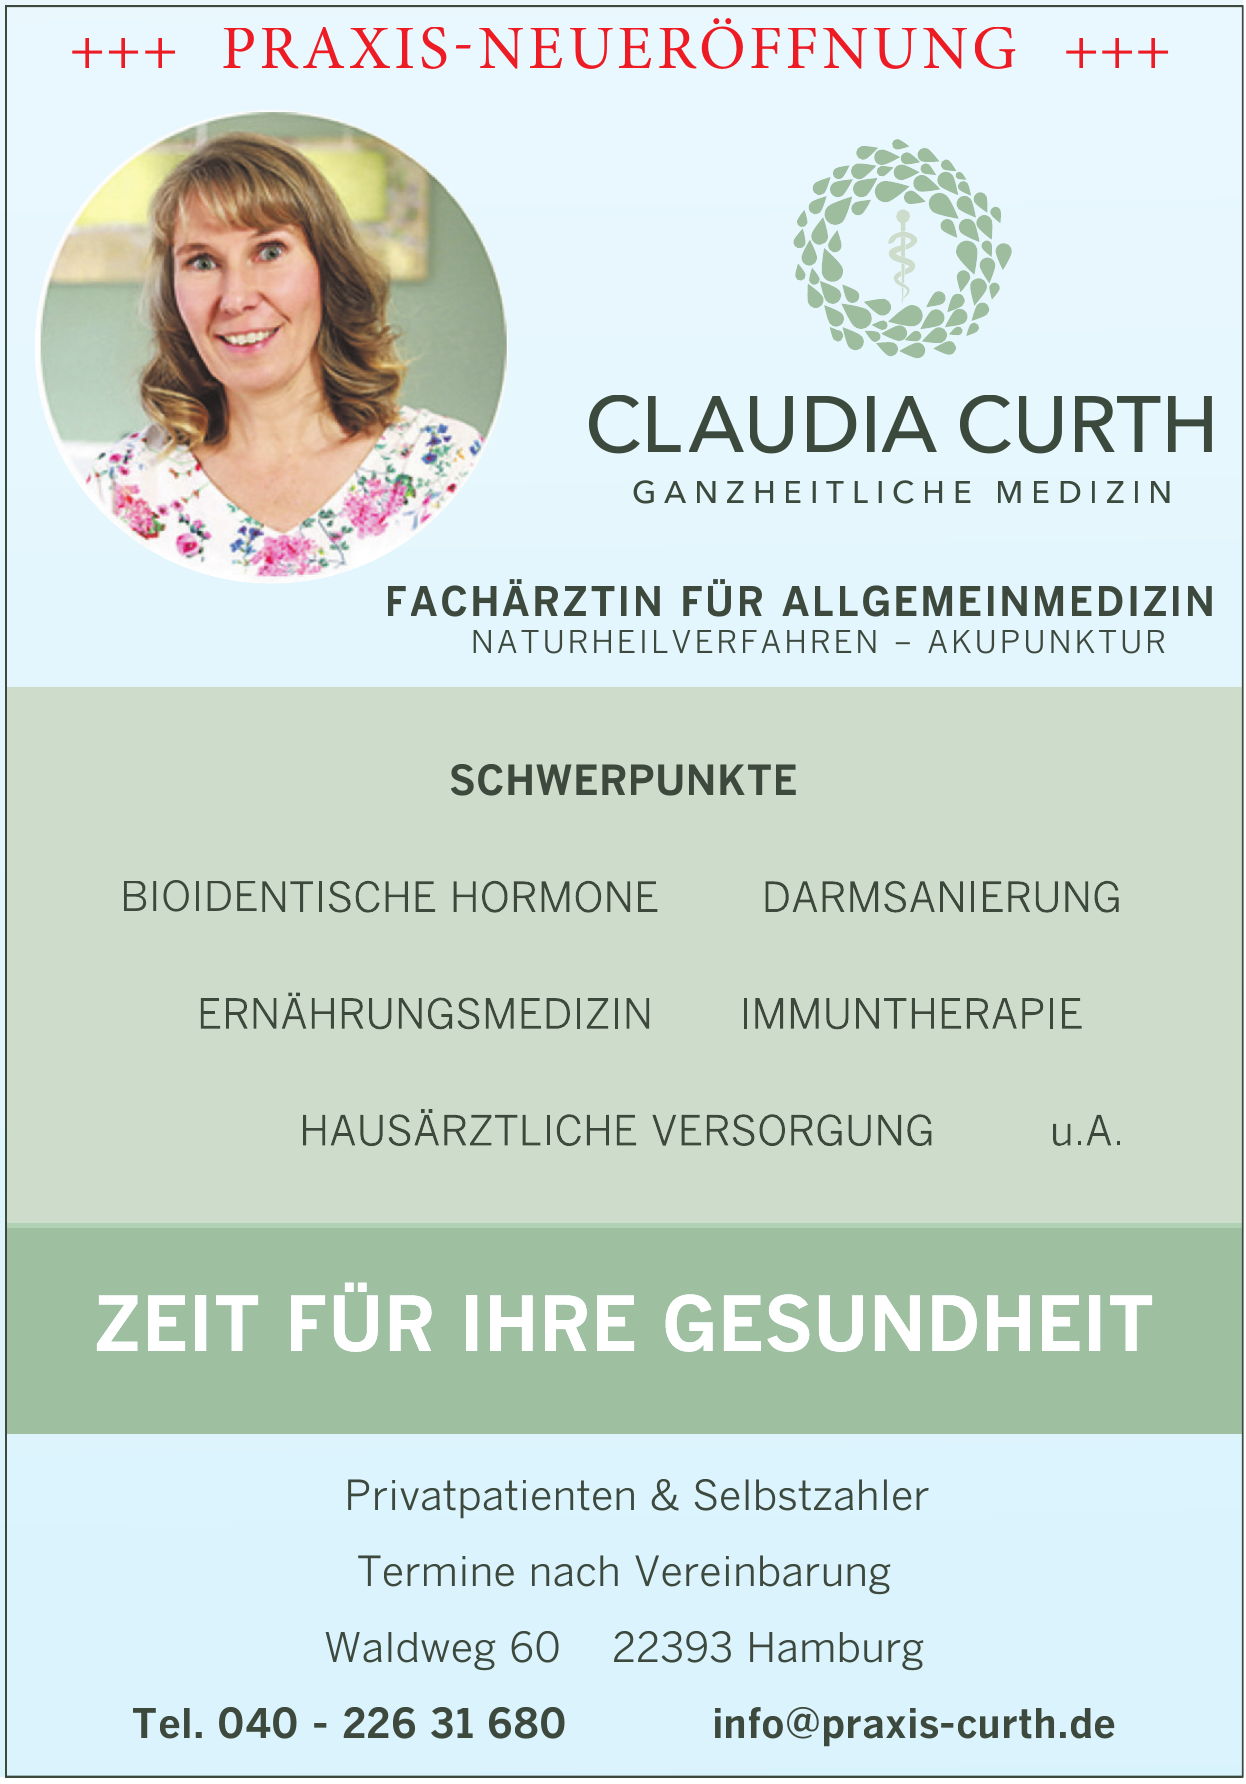 Claudia Curth